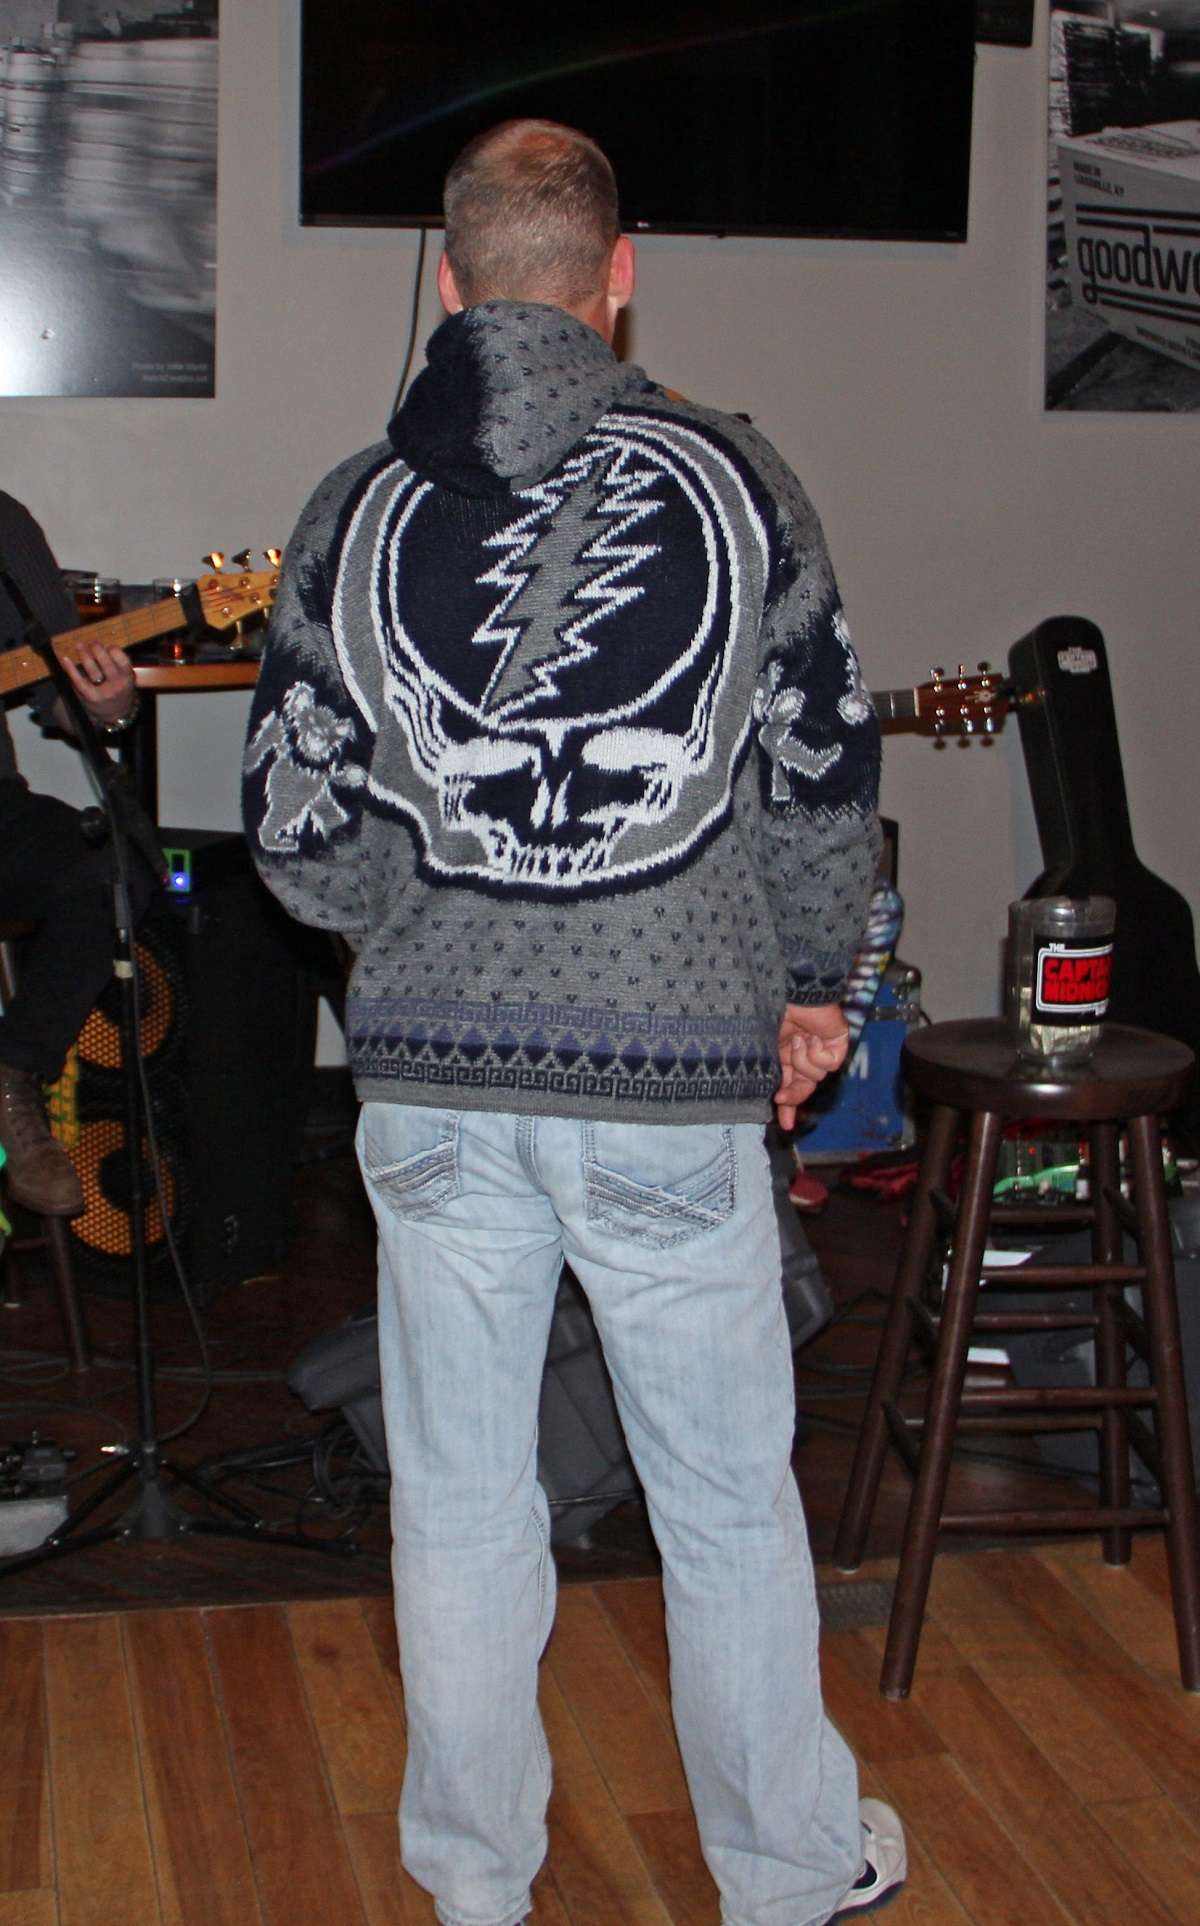 Grateful Dead sweater. This is either the hippest thing ever or the dorkiest. But that's the whole point of an ugly sweater party isn't it?